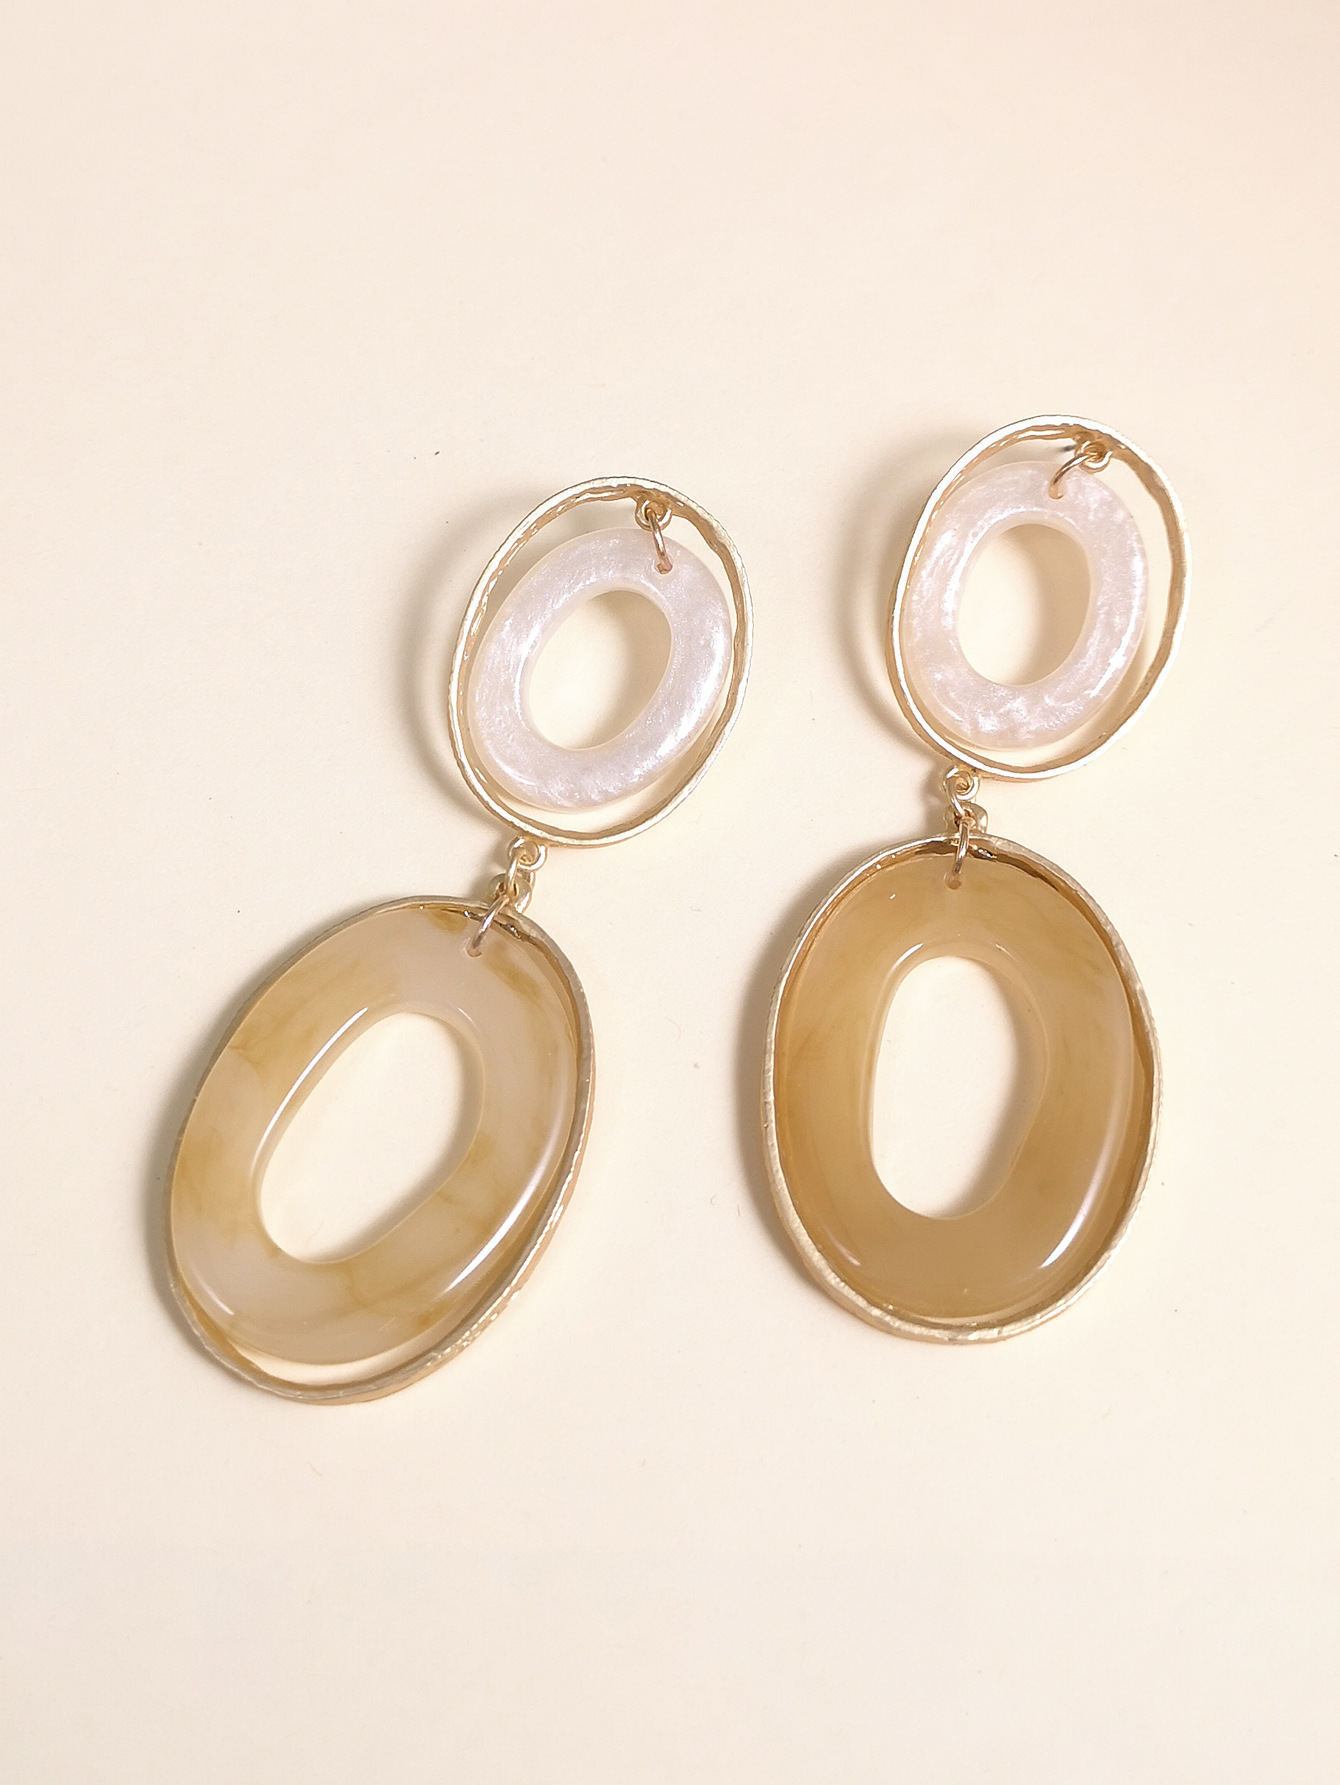 fashion new big brand exaggerated style earrings  oval geometric earrings wholesale  NHUI221132